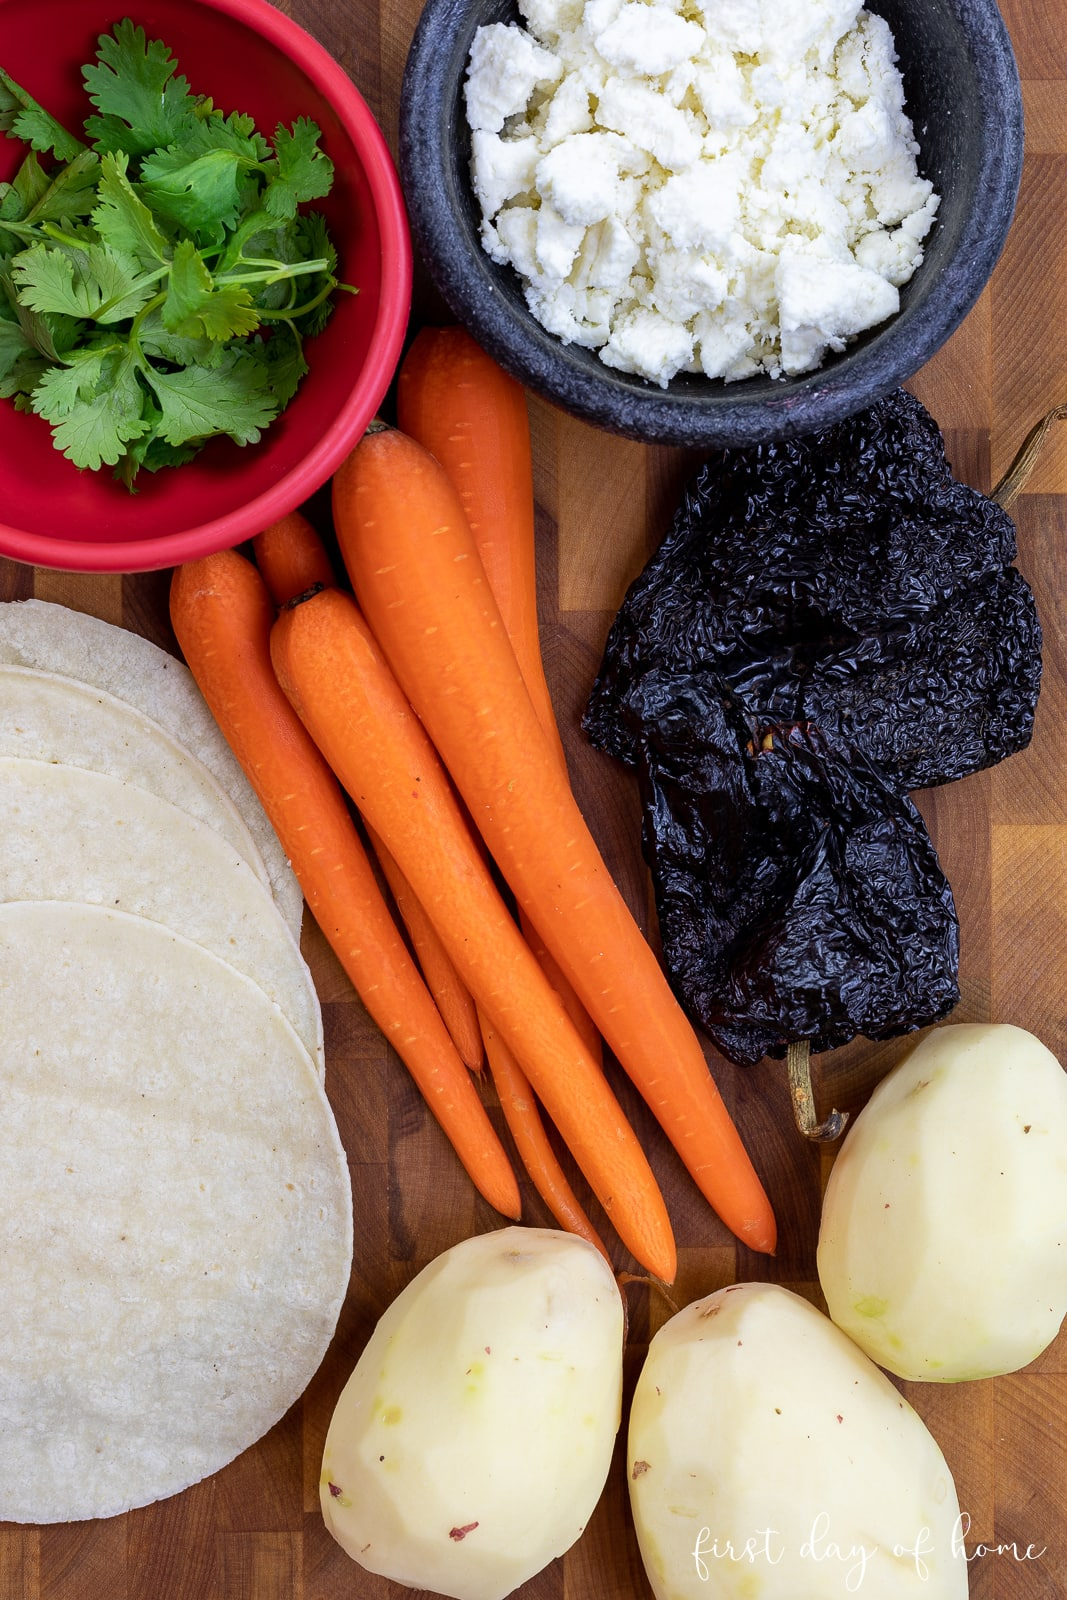 Ingredients for red enchiladas, including corn tortillas, queso fresco, carrots, red potatoes, and ancho chiles